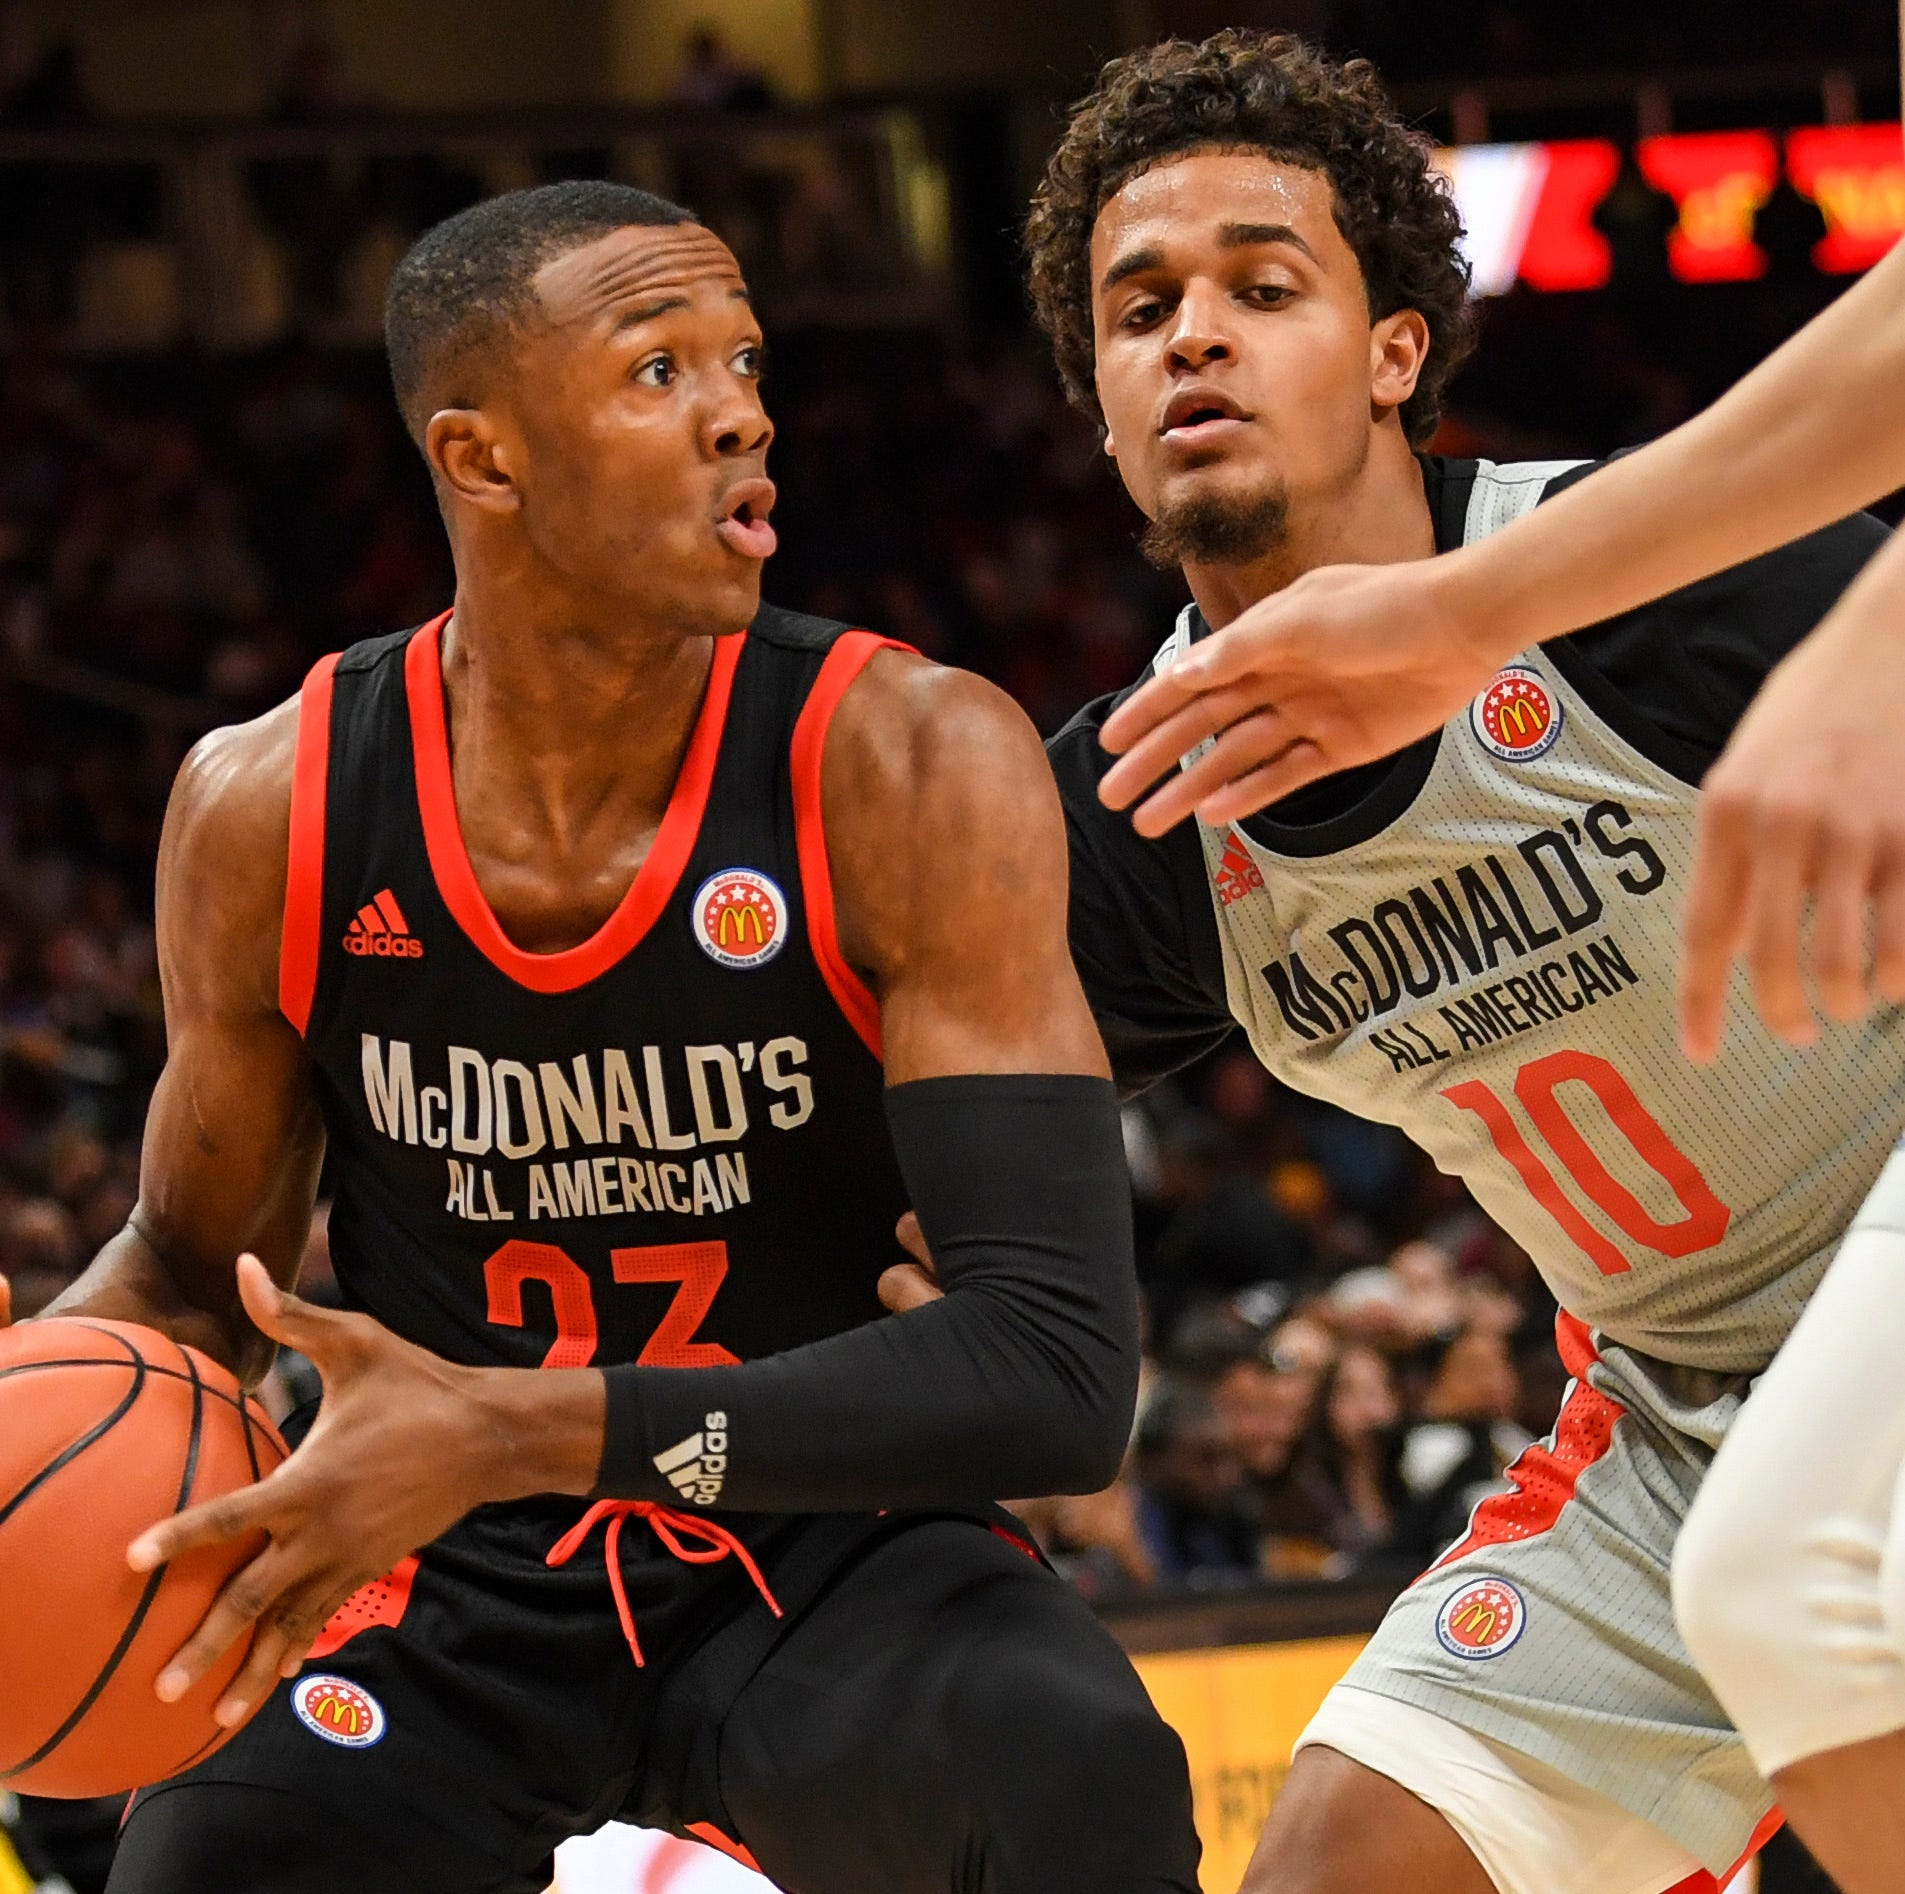 McDonald's All-American Game: For a moment, Scottie Lewis and Bryan Antoine were opponents